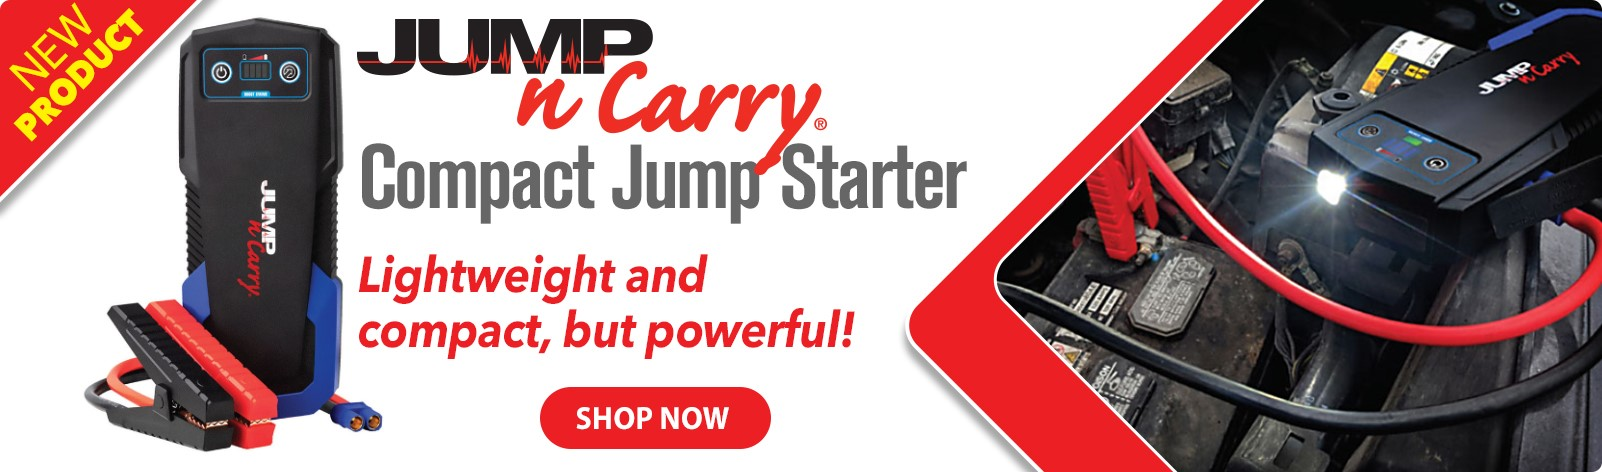 Jump-N-Carry Compact Jump Starter - Lightweight and compact, but powerful!